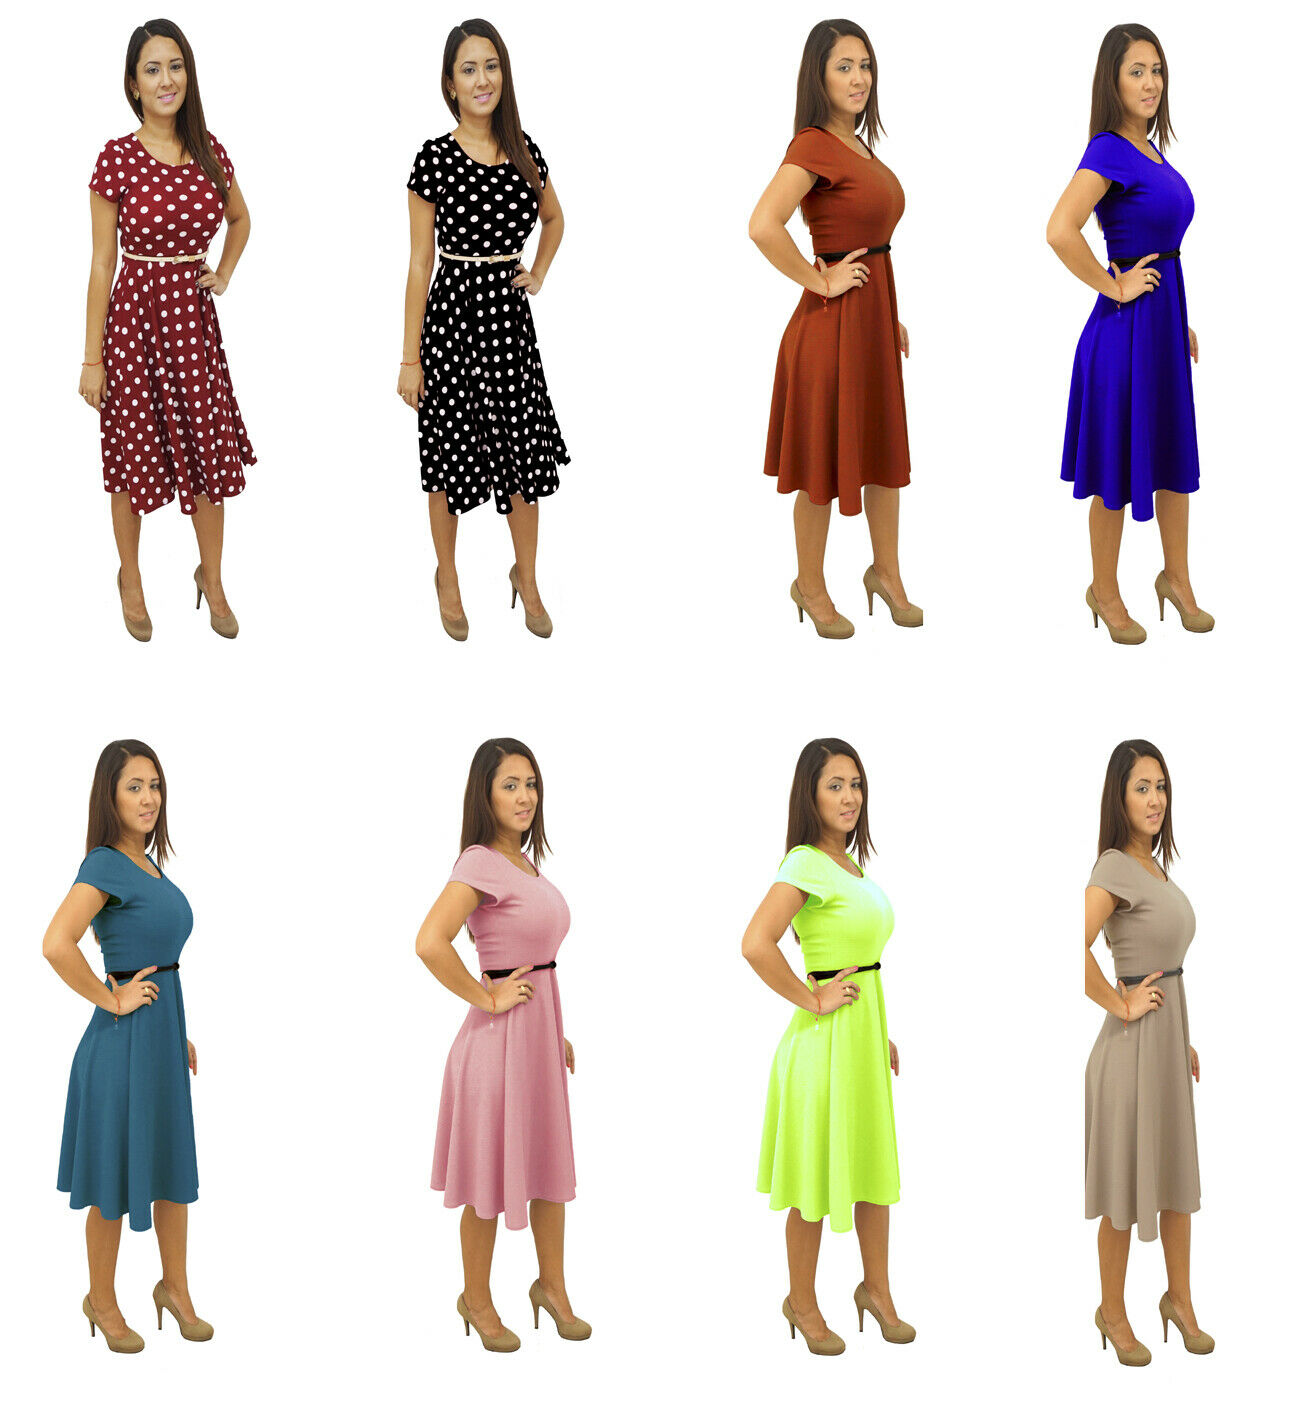 f04a9d50d92c8 Short Sleeves V-Neck Women's Party Dresses Regular Plus Sizes Made in USA